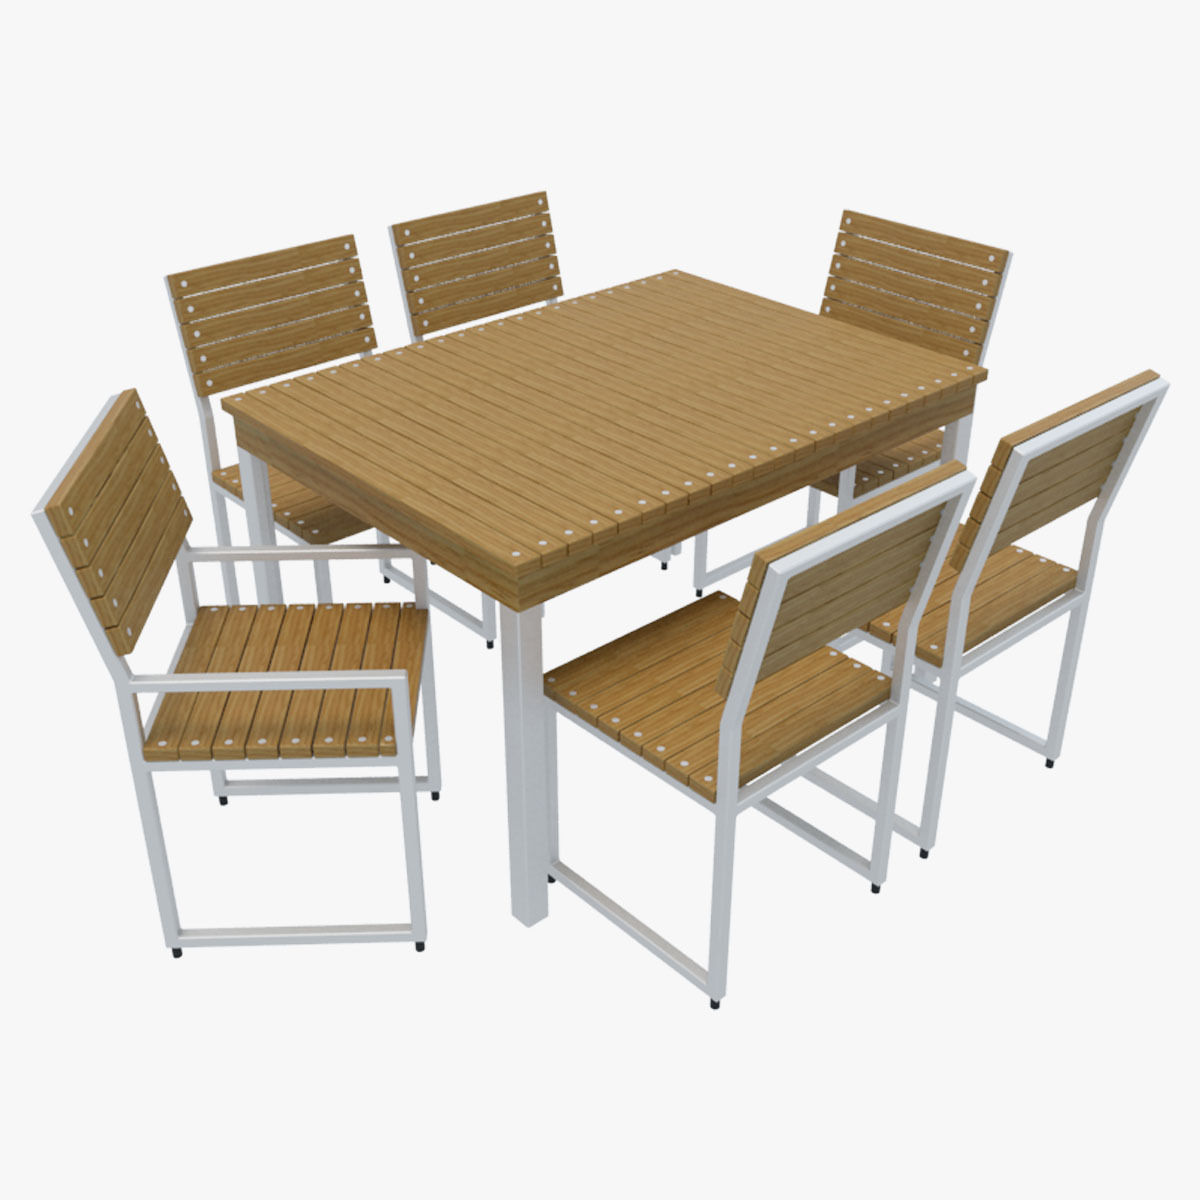 Outdoor Furniture 2 Cgtrader